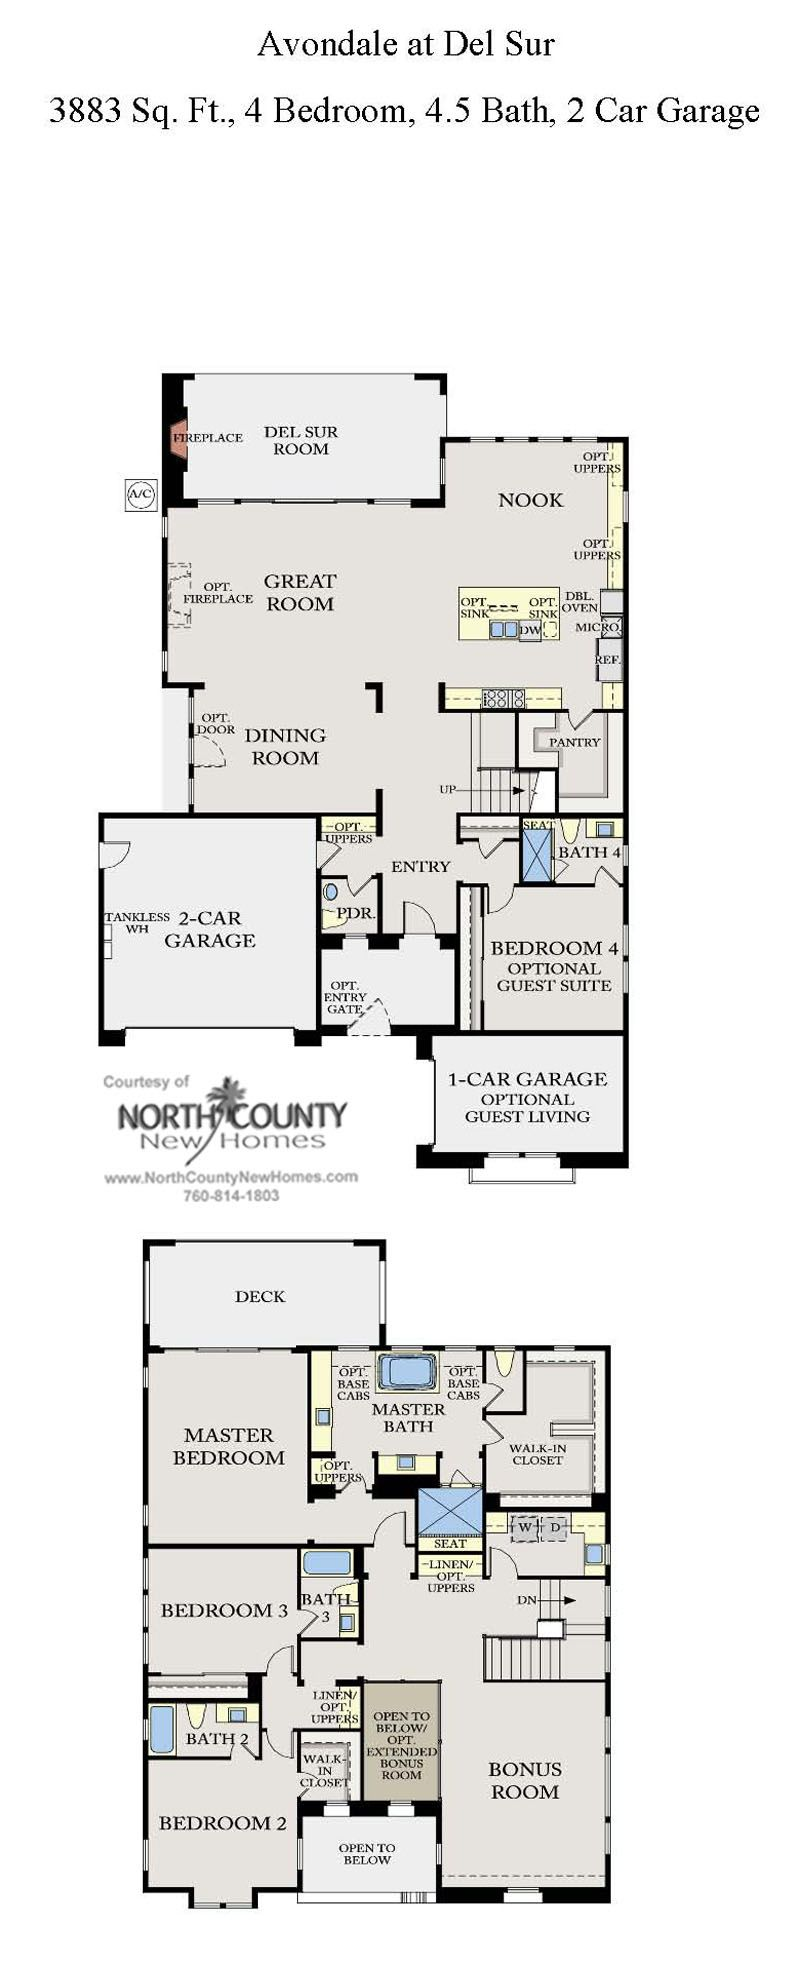 Del sur new homes avondale at del sur floor plan 1 floor plans see 3 avondale at del sur floor plans new single family homes now selling in del sur find all new homes in del sur and nearby malvernweather Gallery